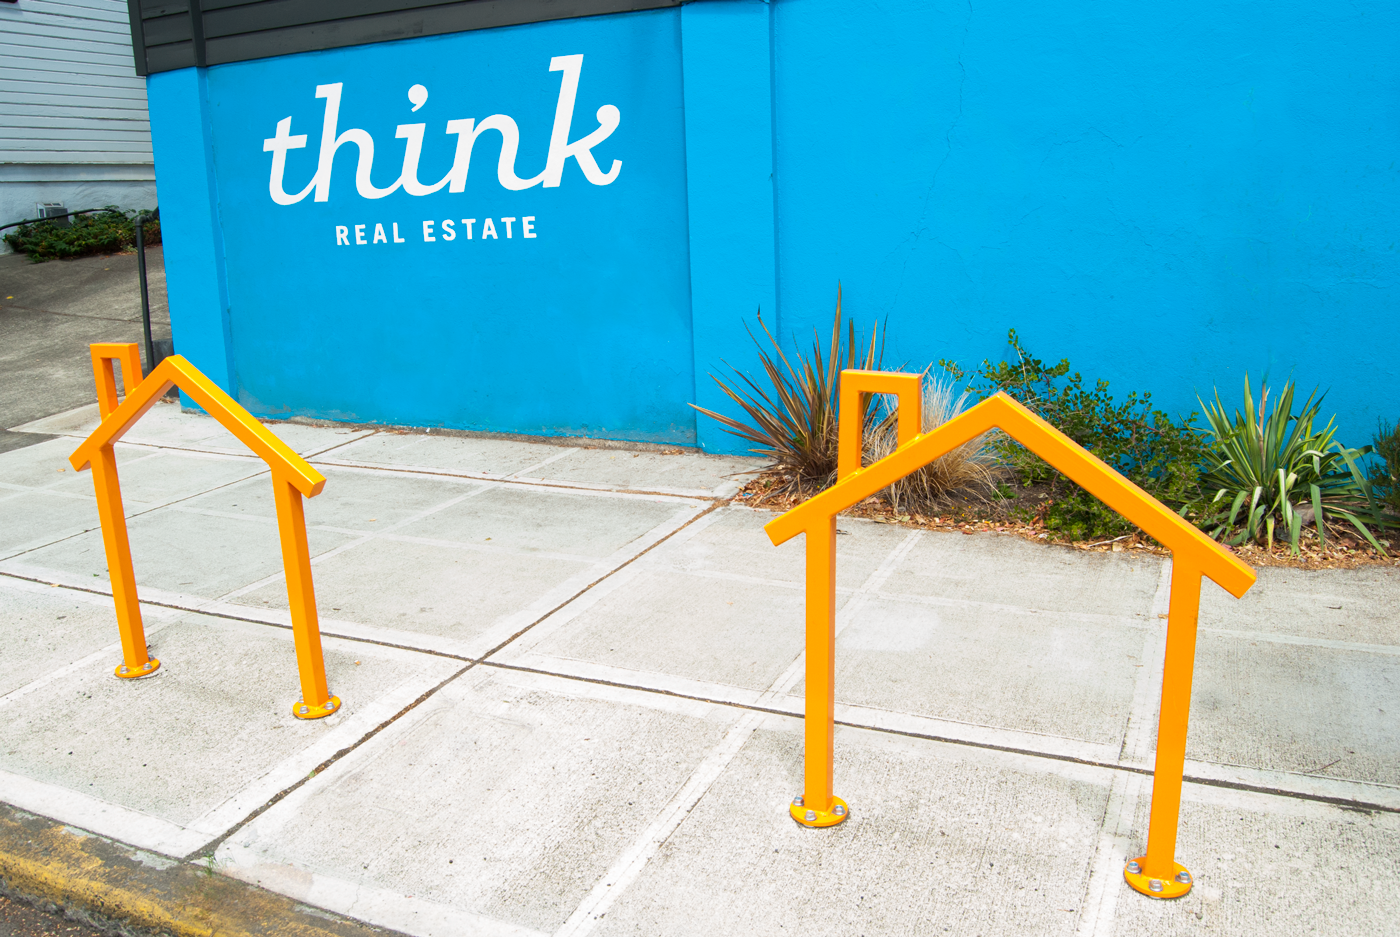 Part bike rack, part advertising for a great localreal estate company.